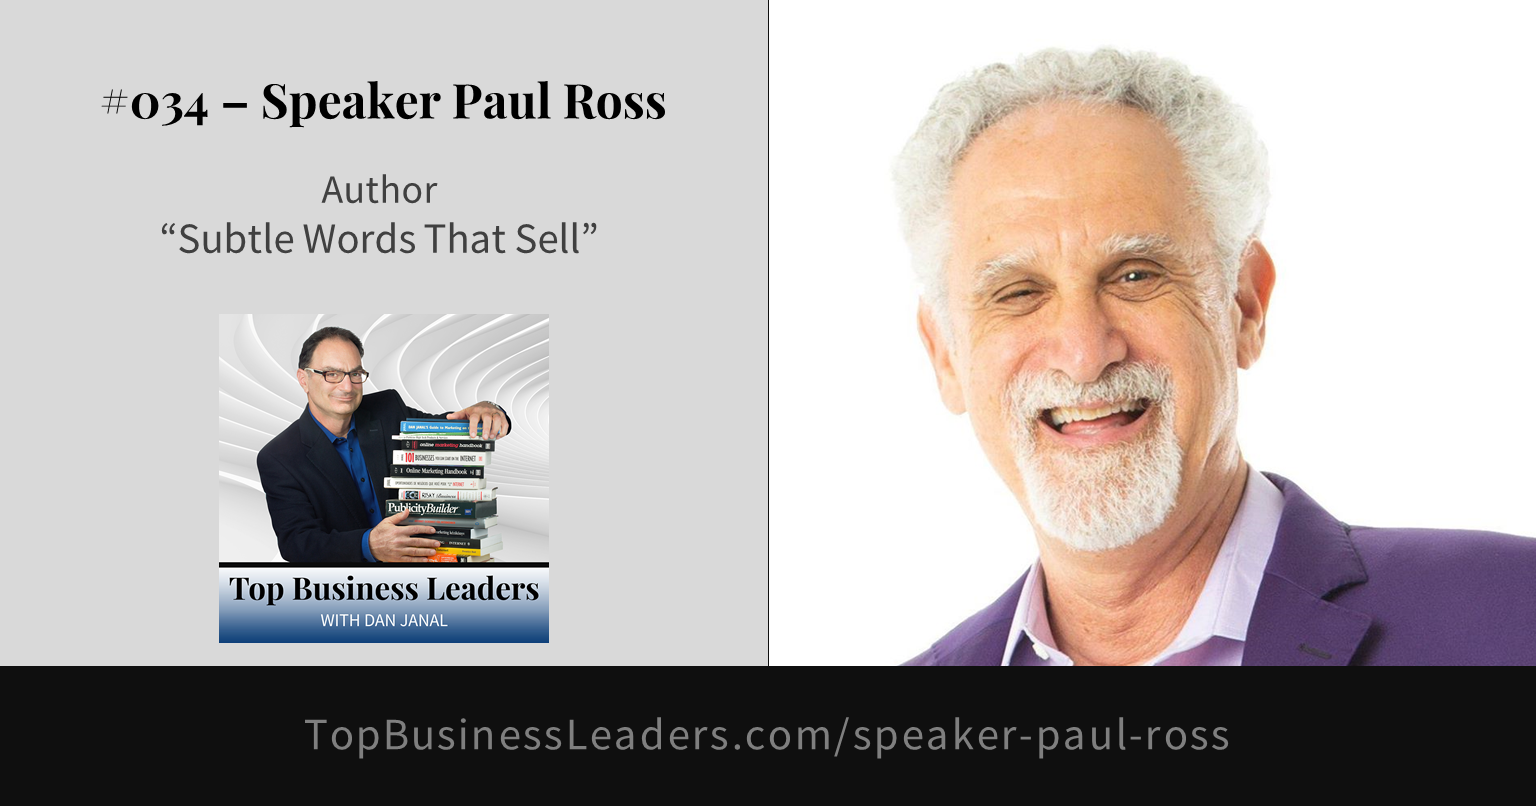 speaker-paul-ross-author-subtle-words-that-sell